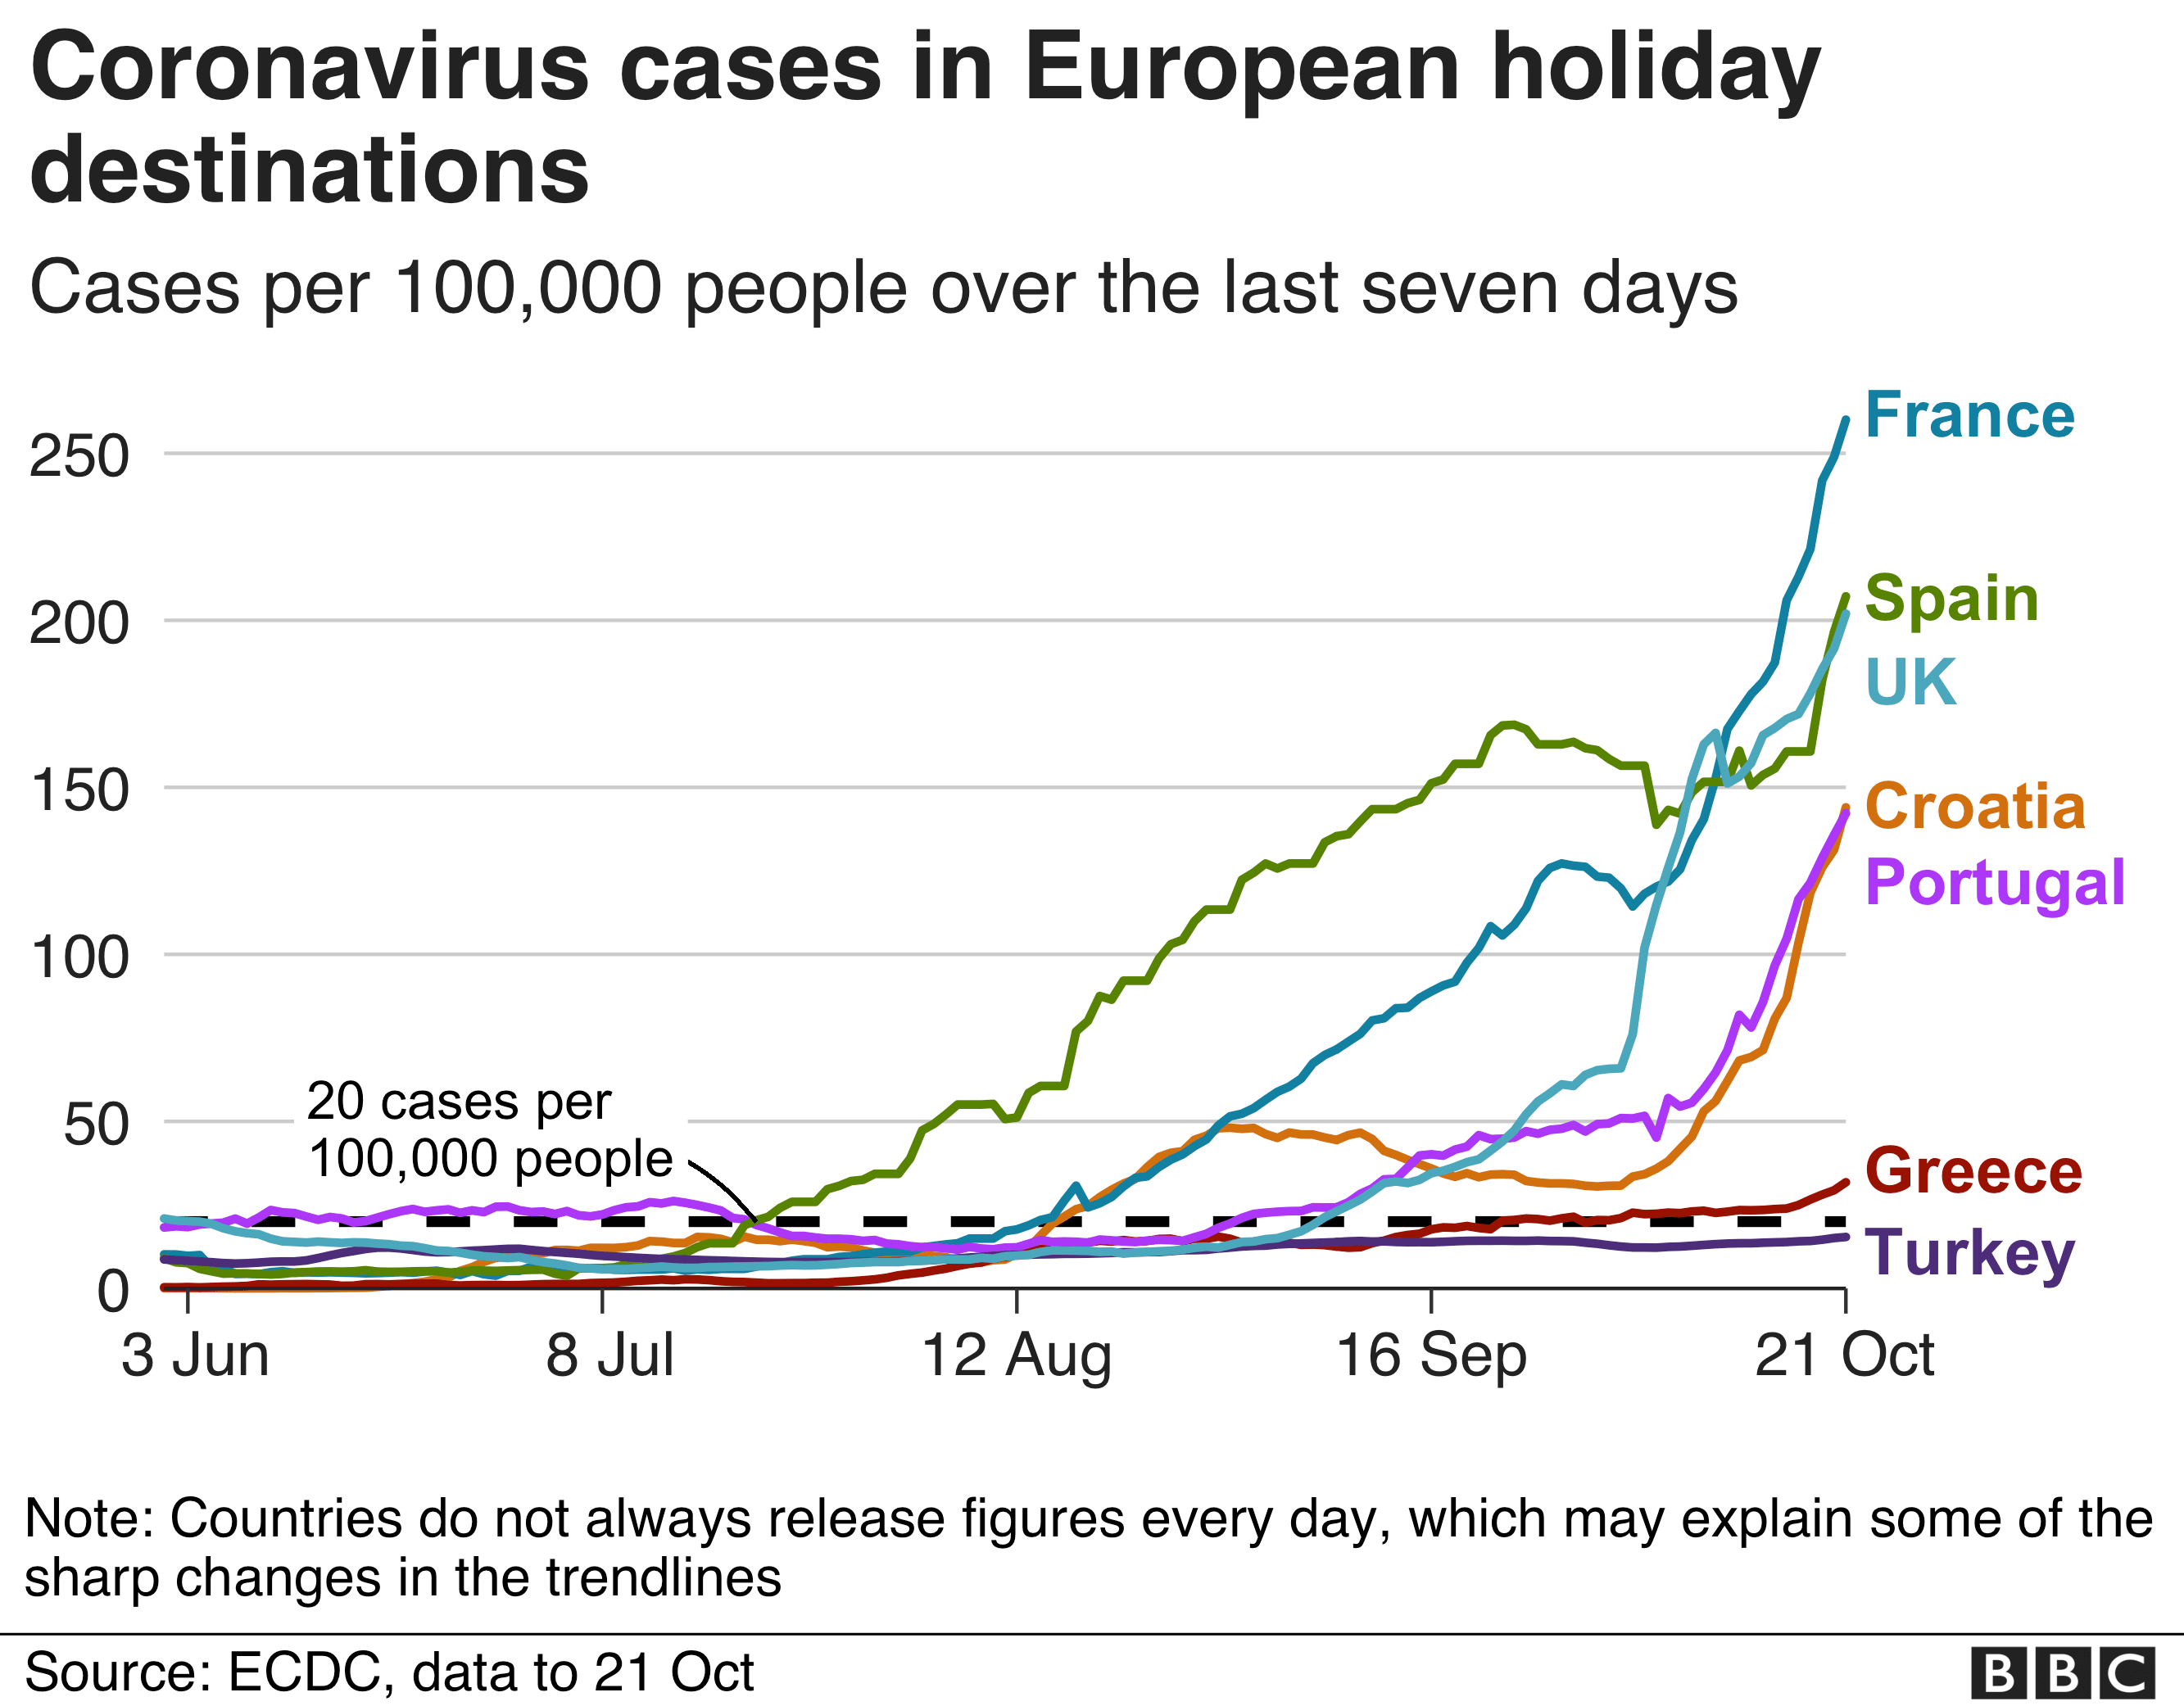 22 October chart showing coronavirus cases by destination